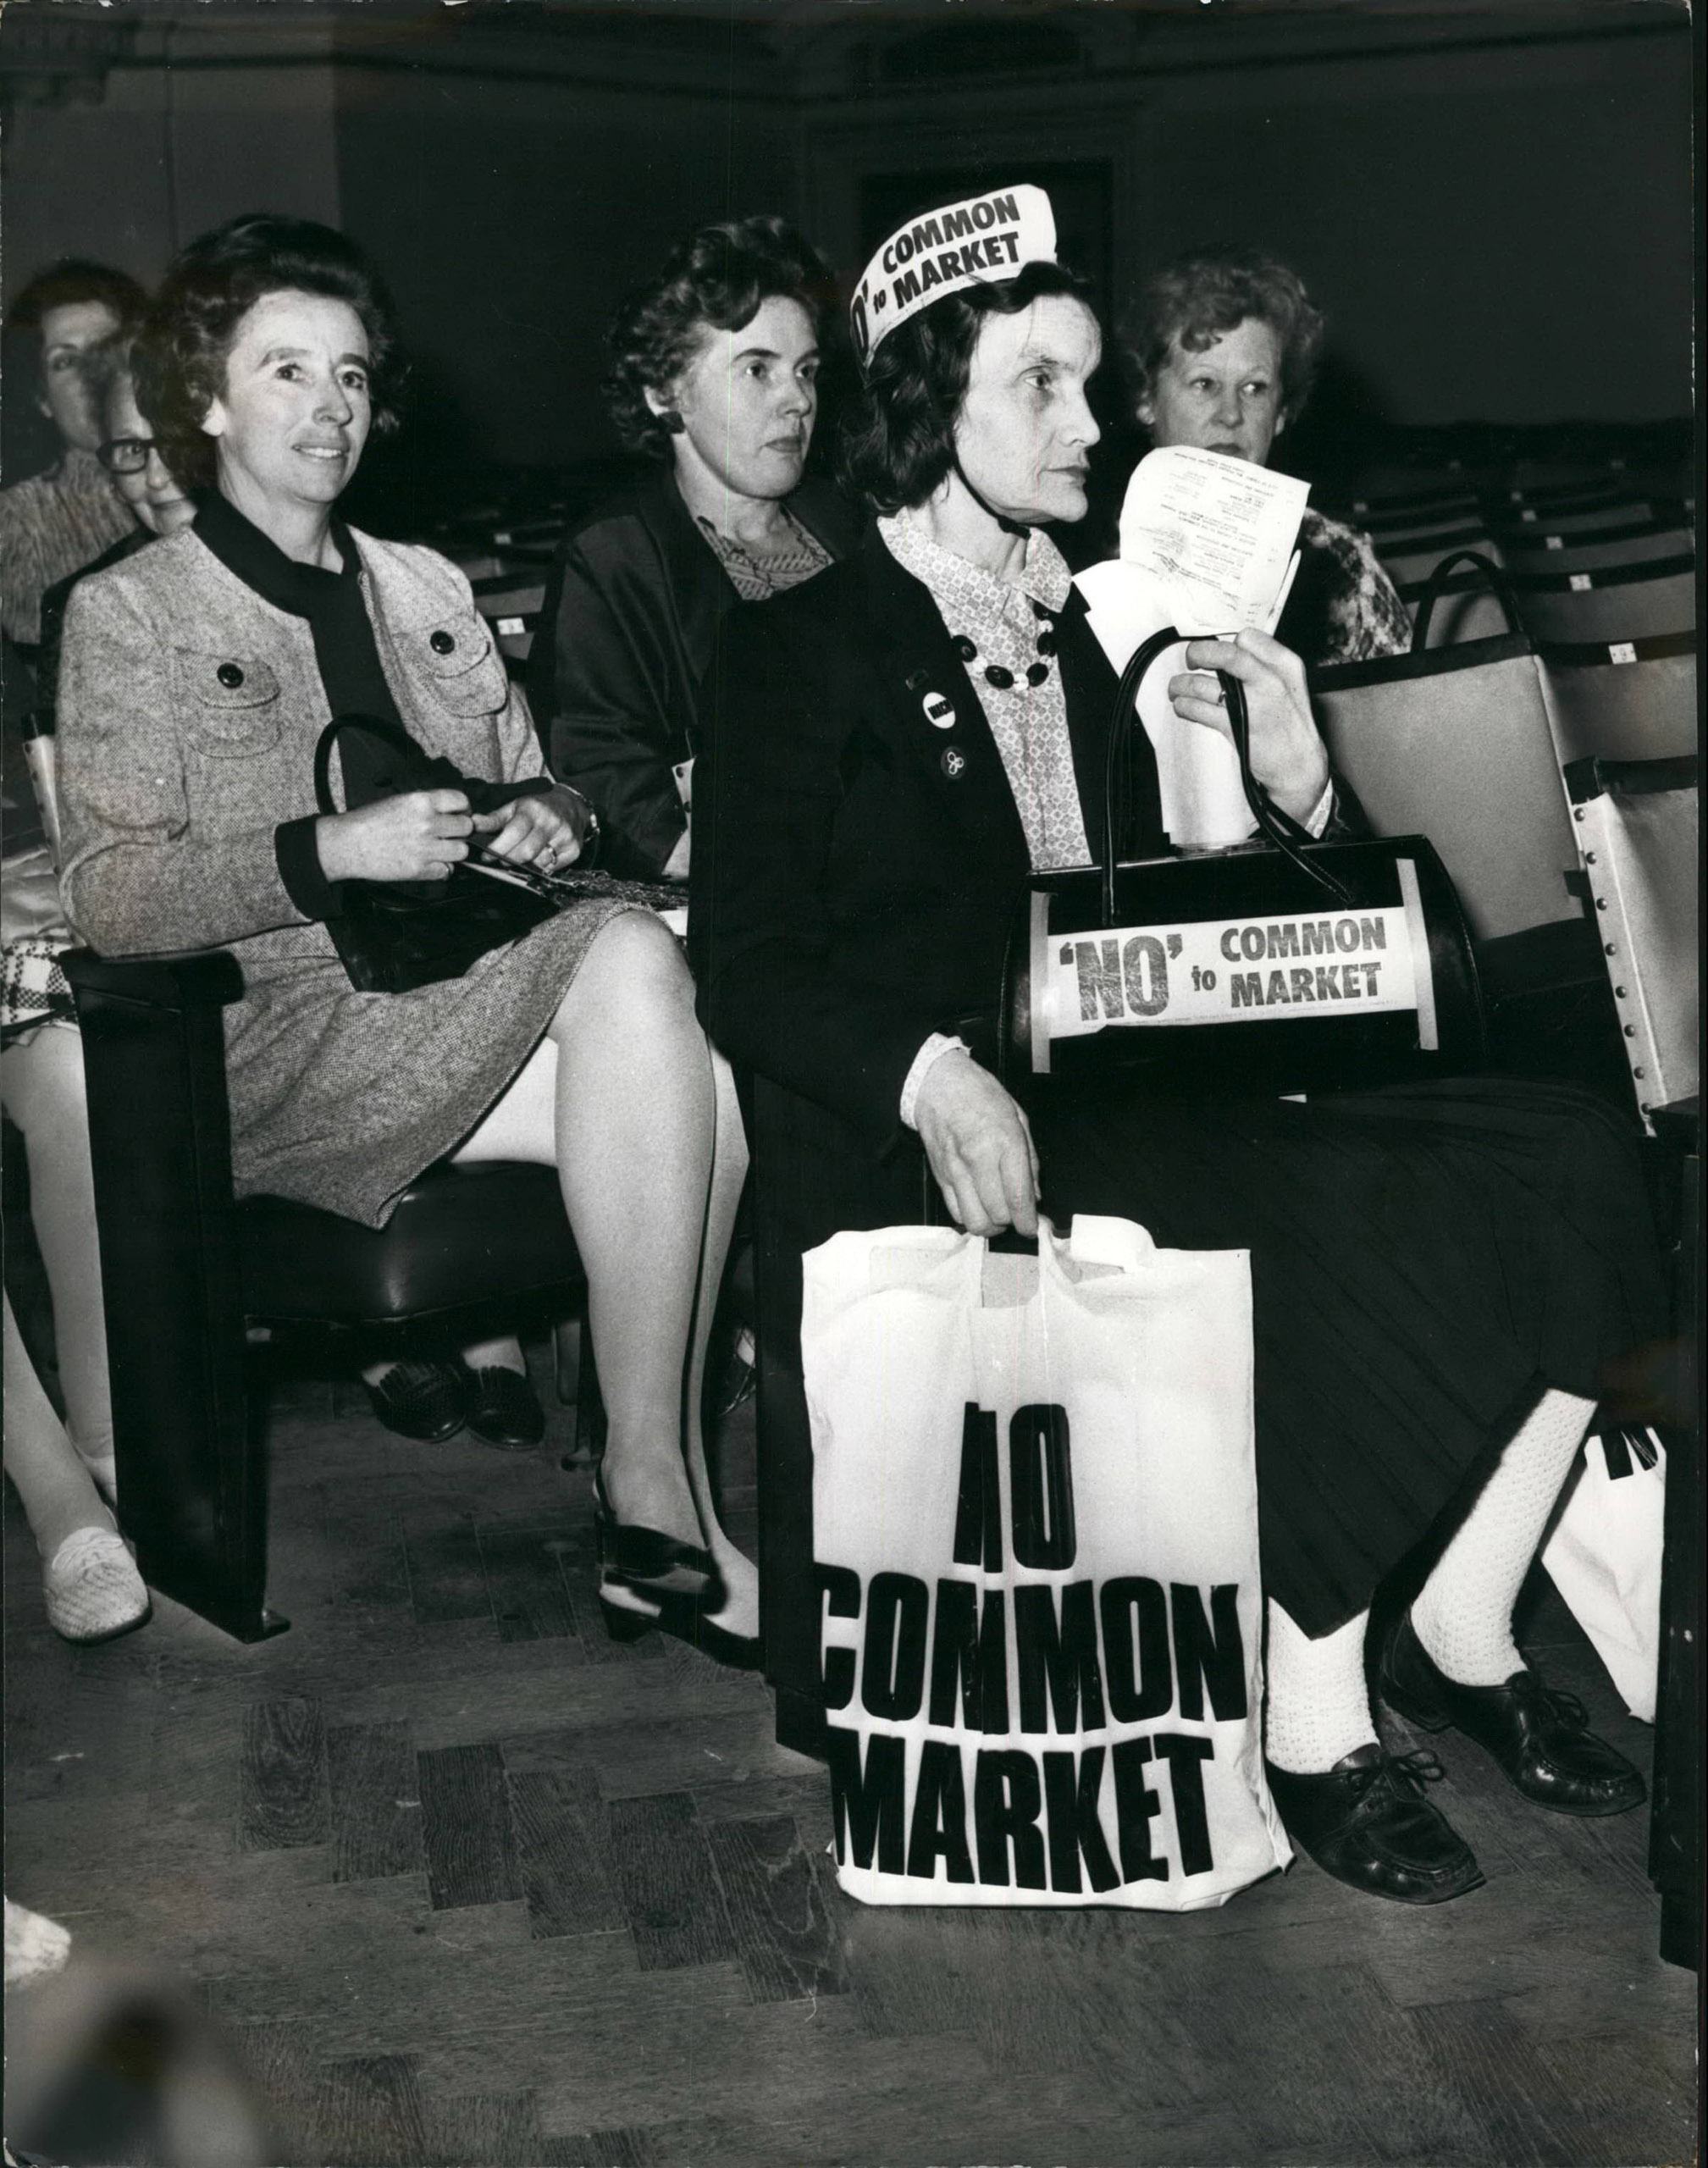 Mrs. Barbara Fellows, of South Kensington, shows her disapproval of joining the Common Market, Oct. 10, 1971.